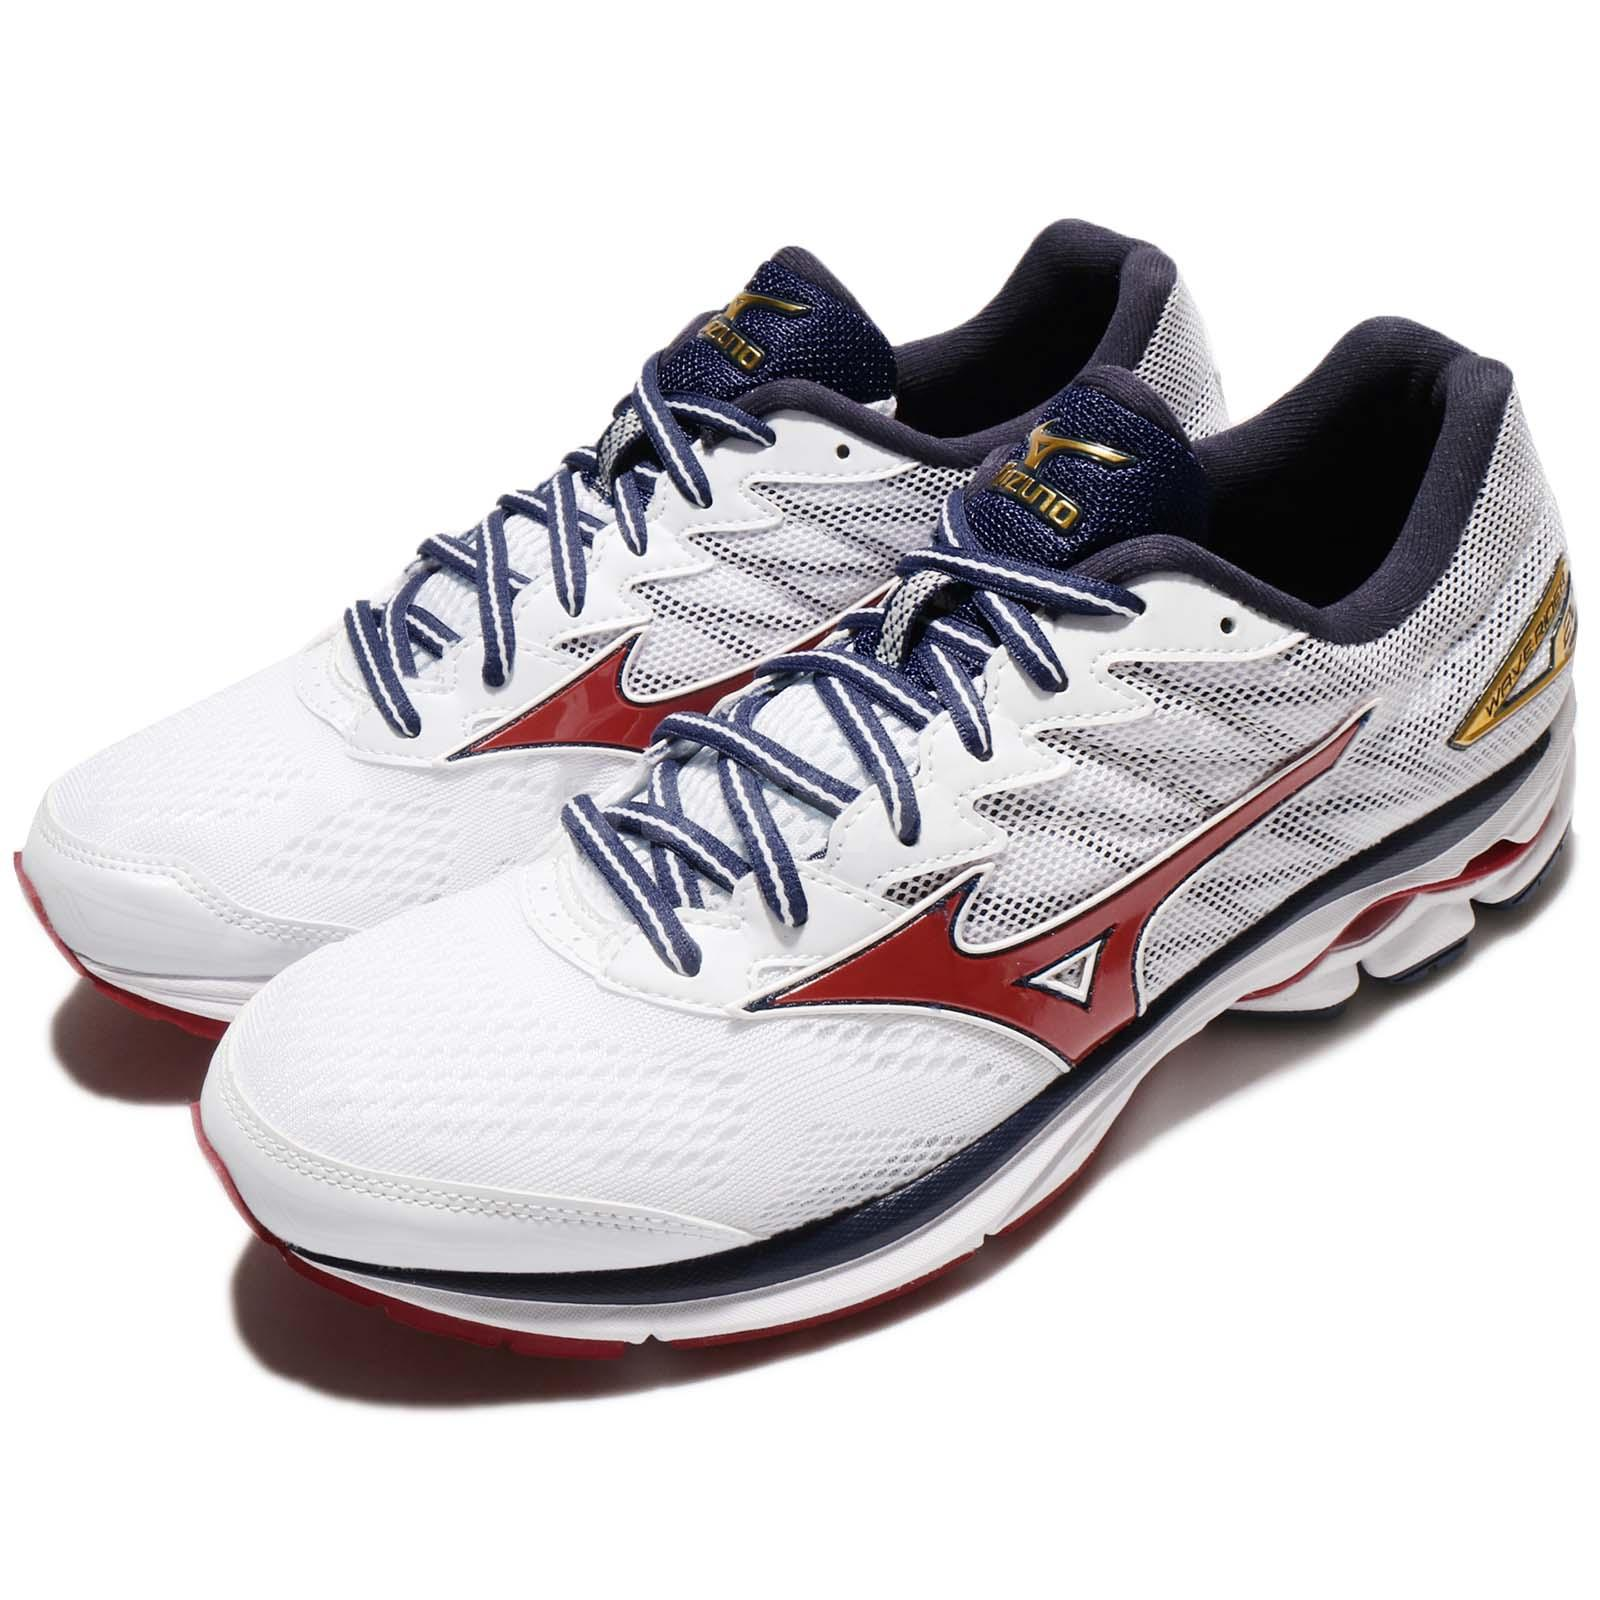 f13bed7a646c Details about Mizuno Wave Rider 20 White Blue Red Men Running Shoes  Trainers J1GC17-0361